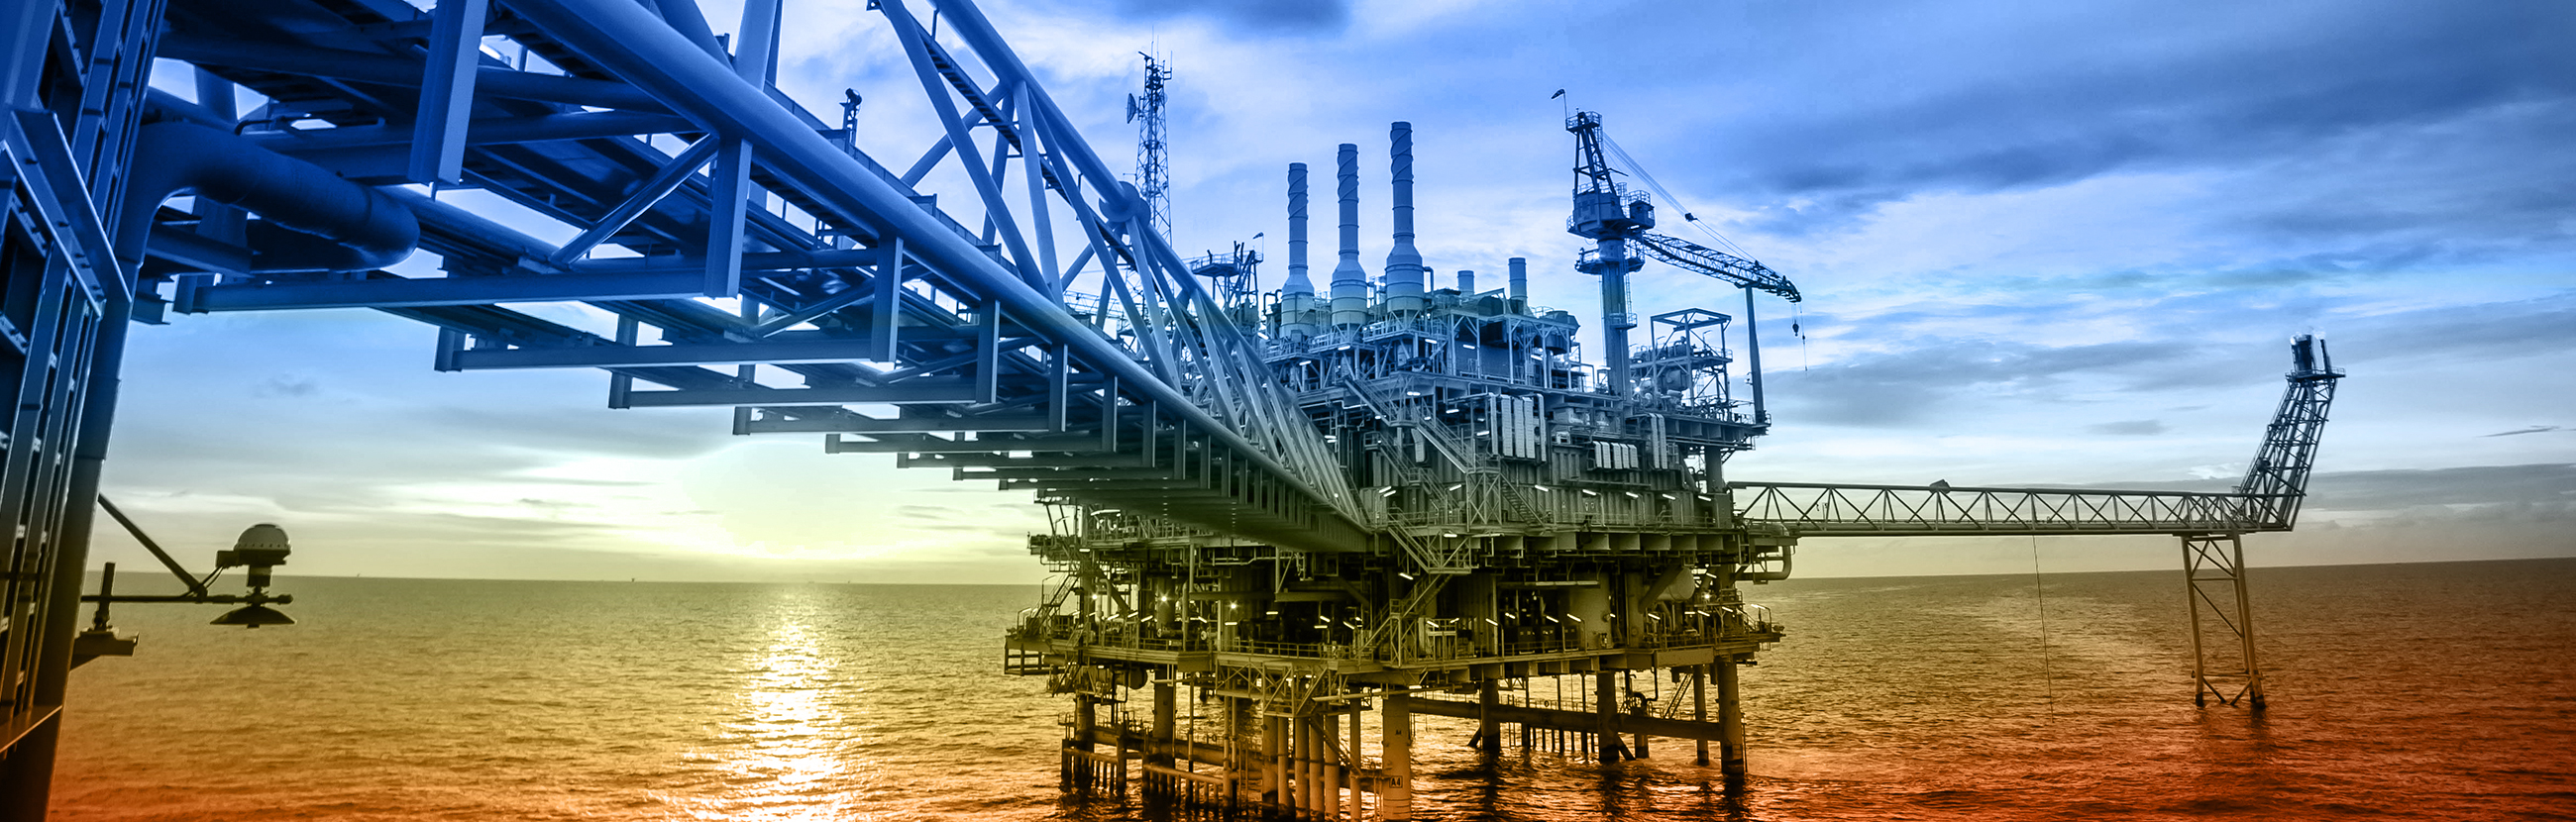 epoxies for oil and chemical processing industries